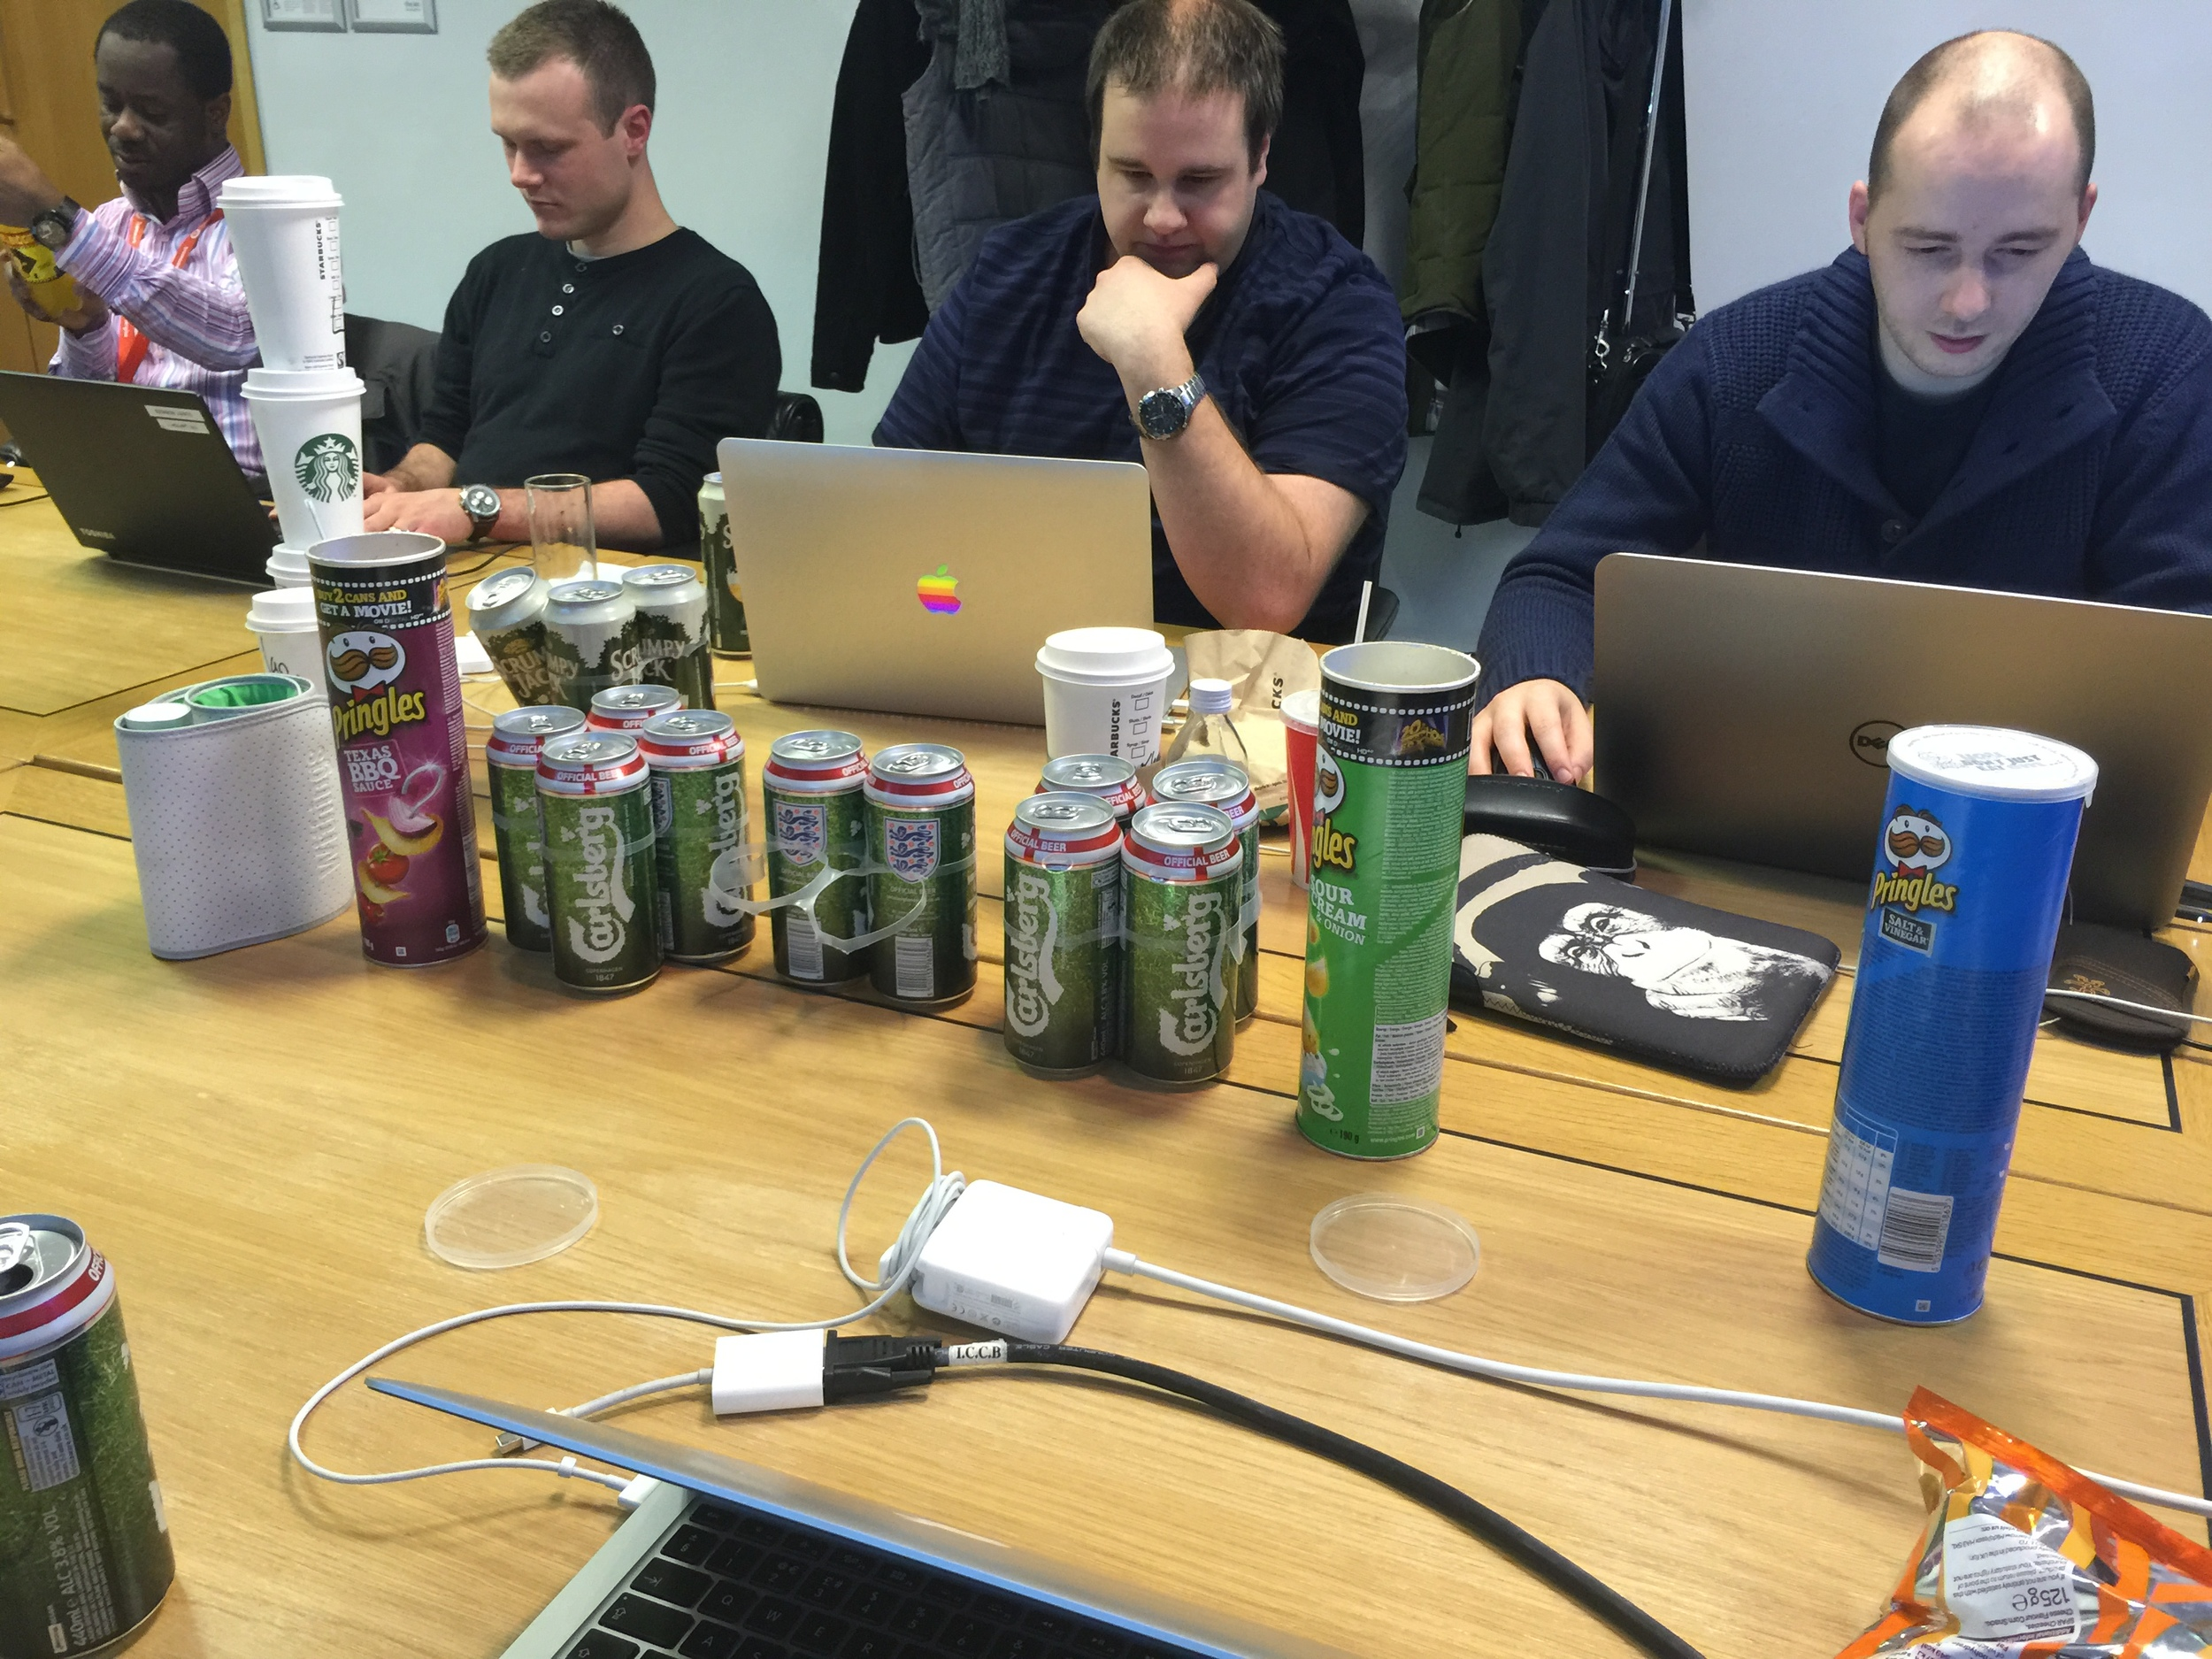 Beer and Pringles, two hack day staples...